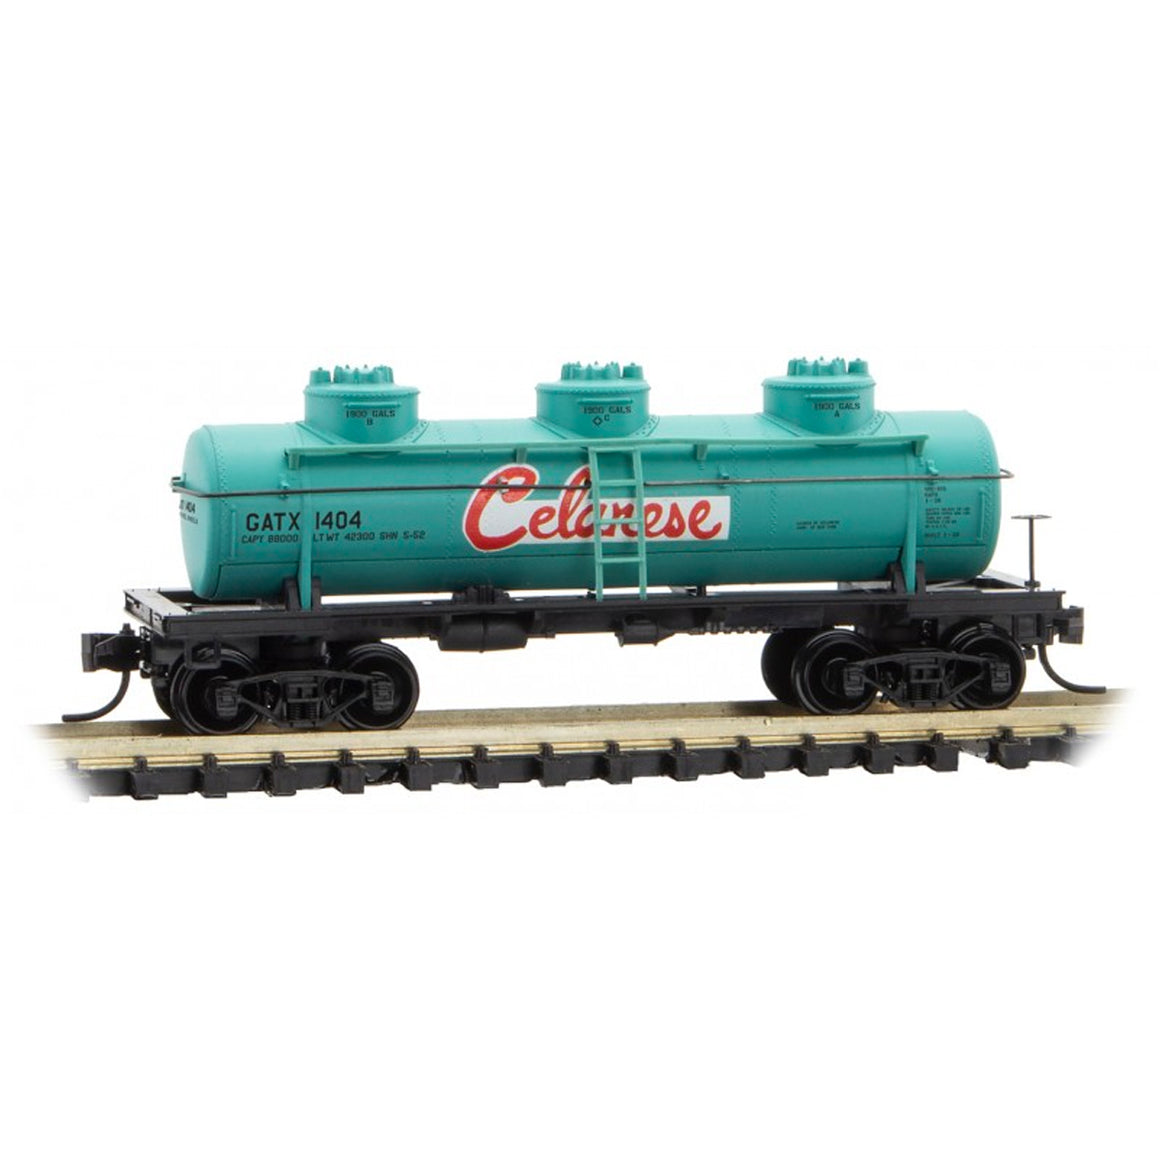 N Scale: 3-Dome Tank Car - Celanese